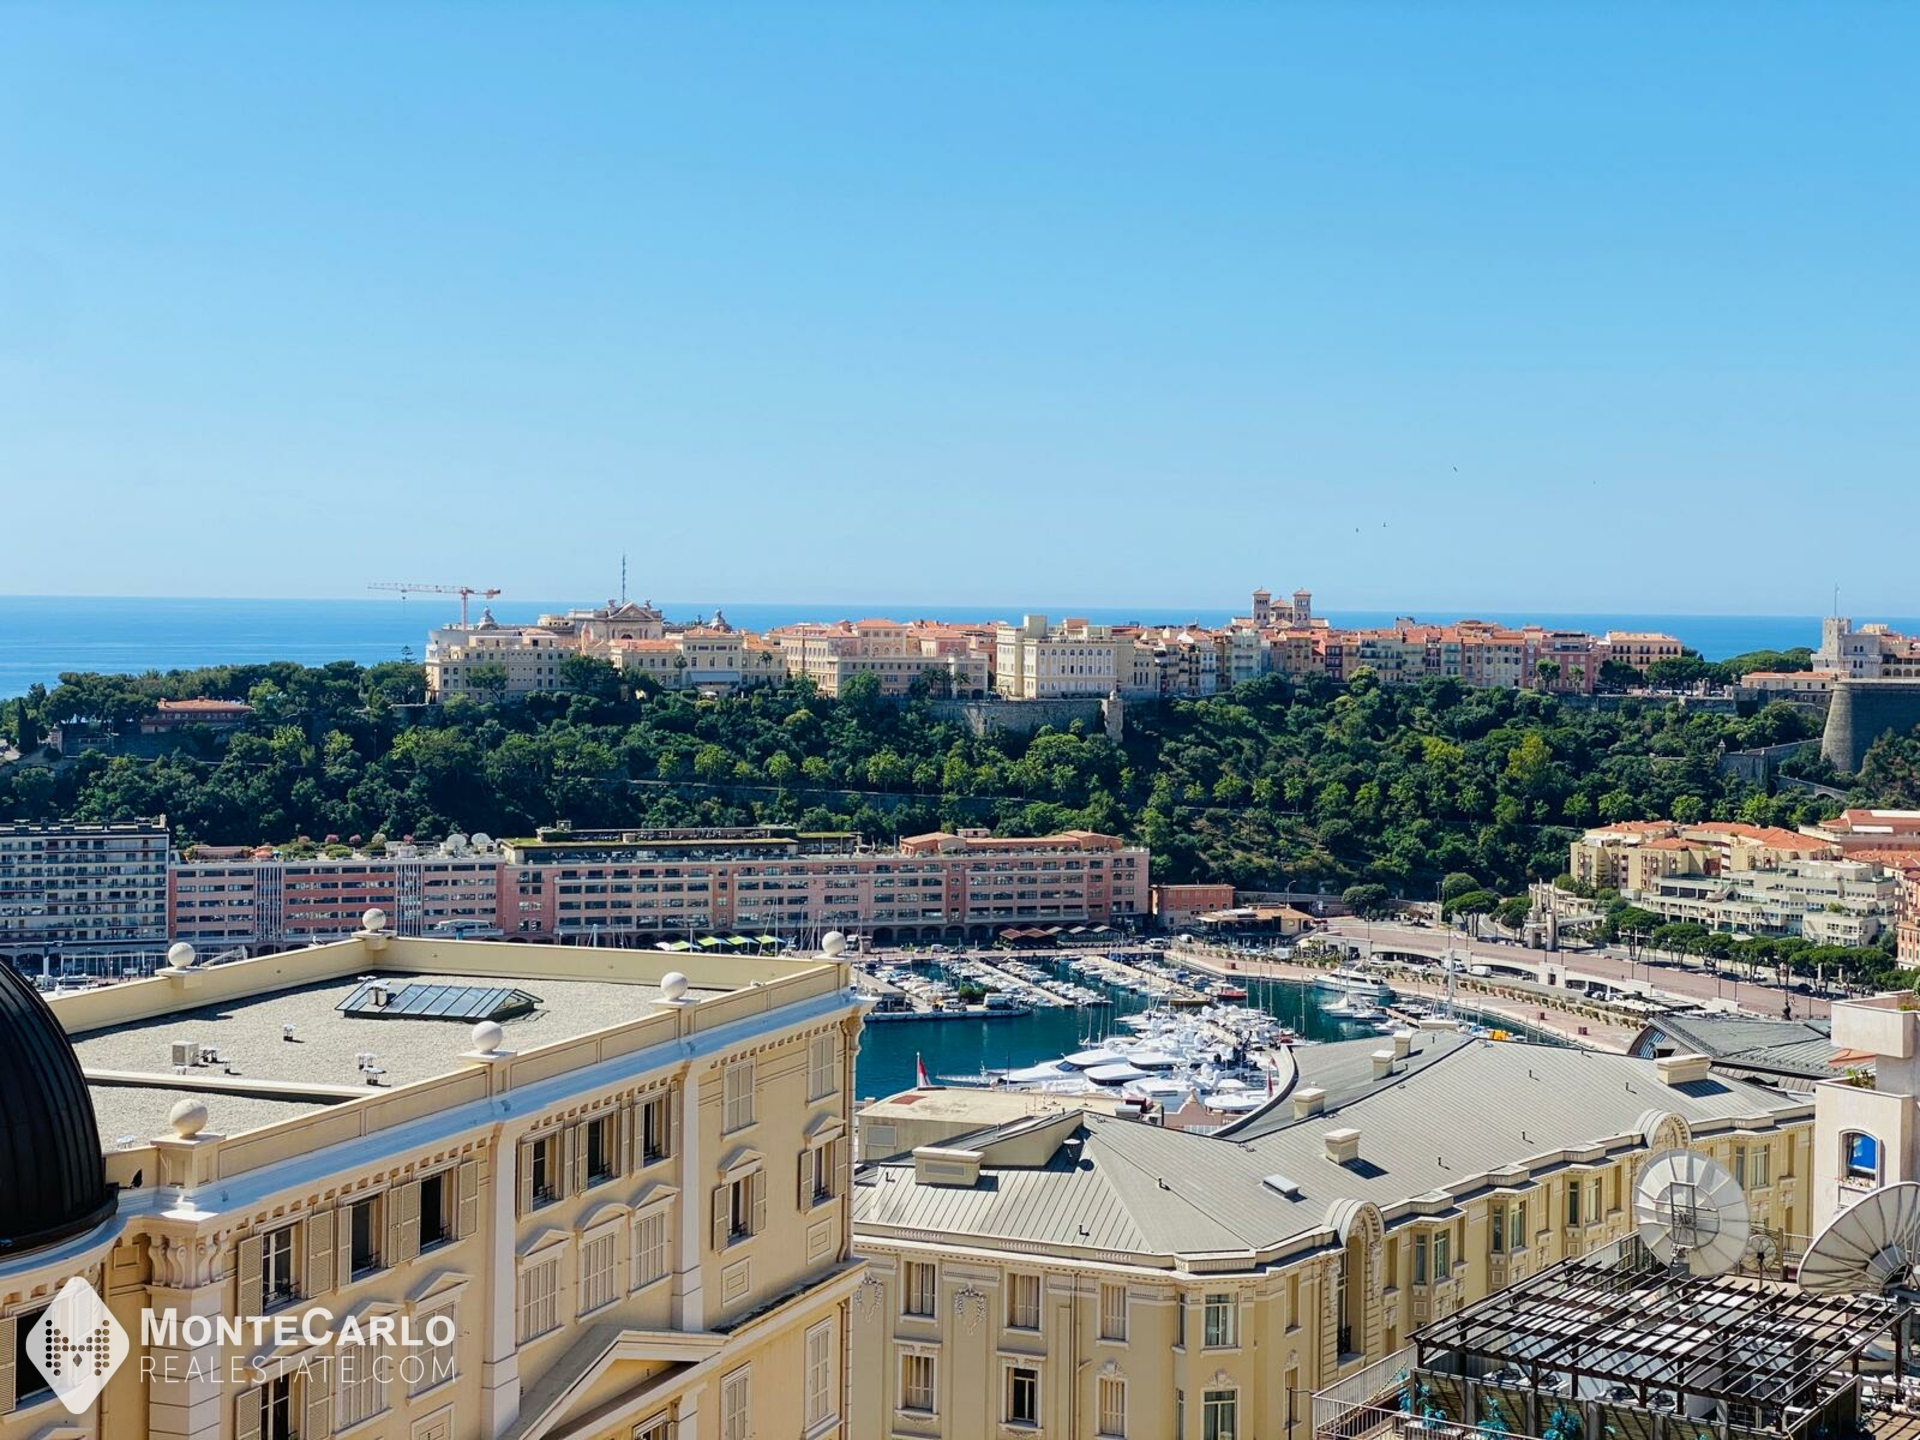 For sale Park Palace - Apartment / 3 rooms : 7 950 000 € | Monte-Carlo Real Estate [VA-M2407-6]